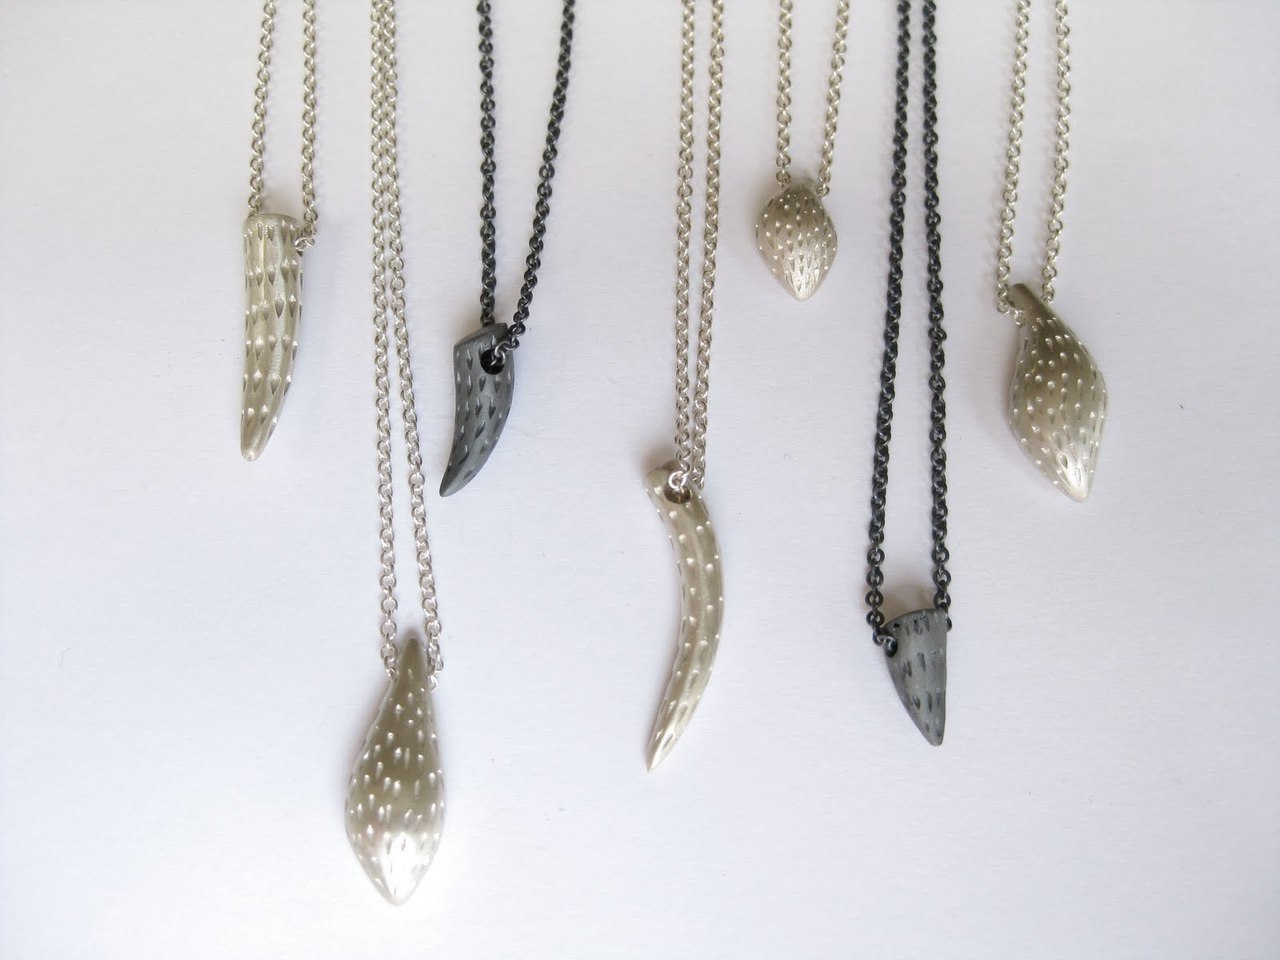 Various Little Tail pendants by Karla Way.